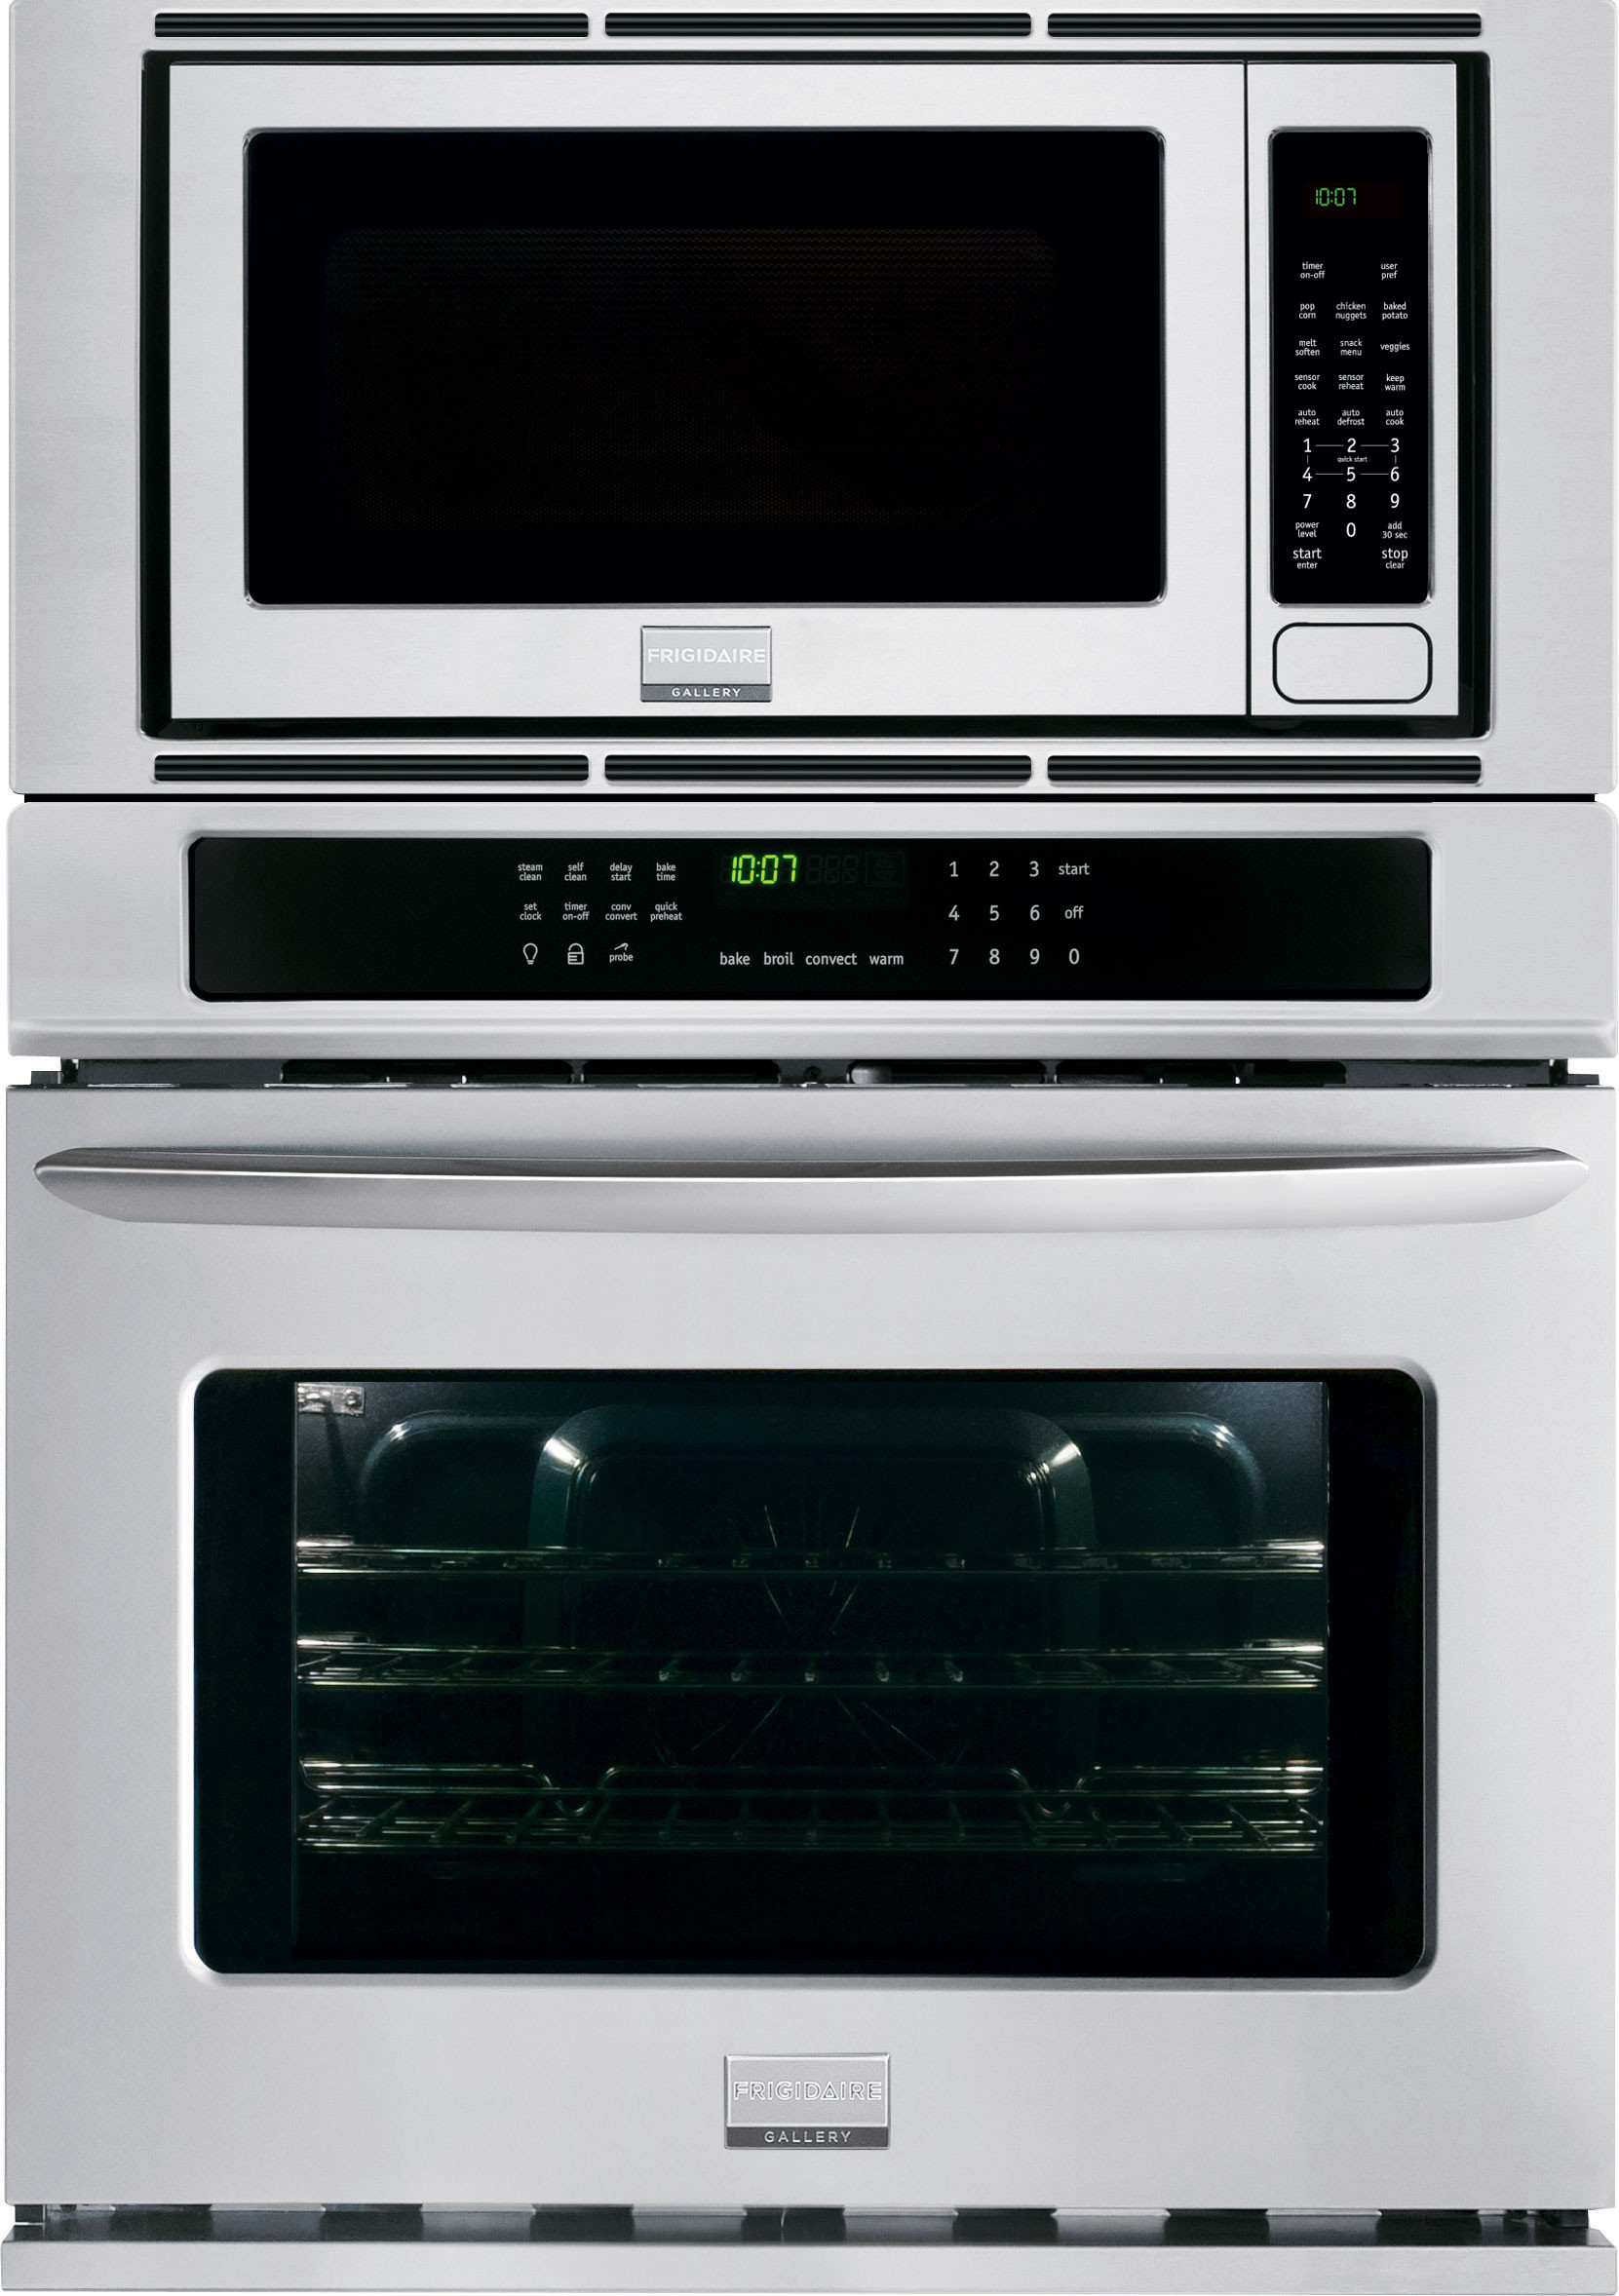 Microwave and Wall Oven Combos on kitchenaid dishwasher replacement panel, samsung microwave control panel, ge microwave control panel, oven control panel, sub-zero refrigerator control panel, kenmore microwave control panel, asko dishwasher control panel, sharp microwave control panel,